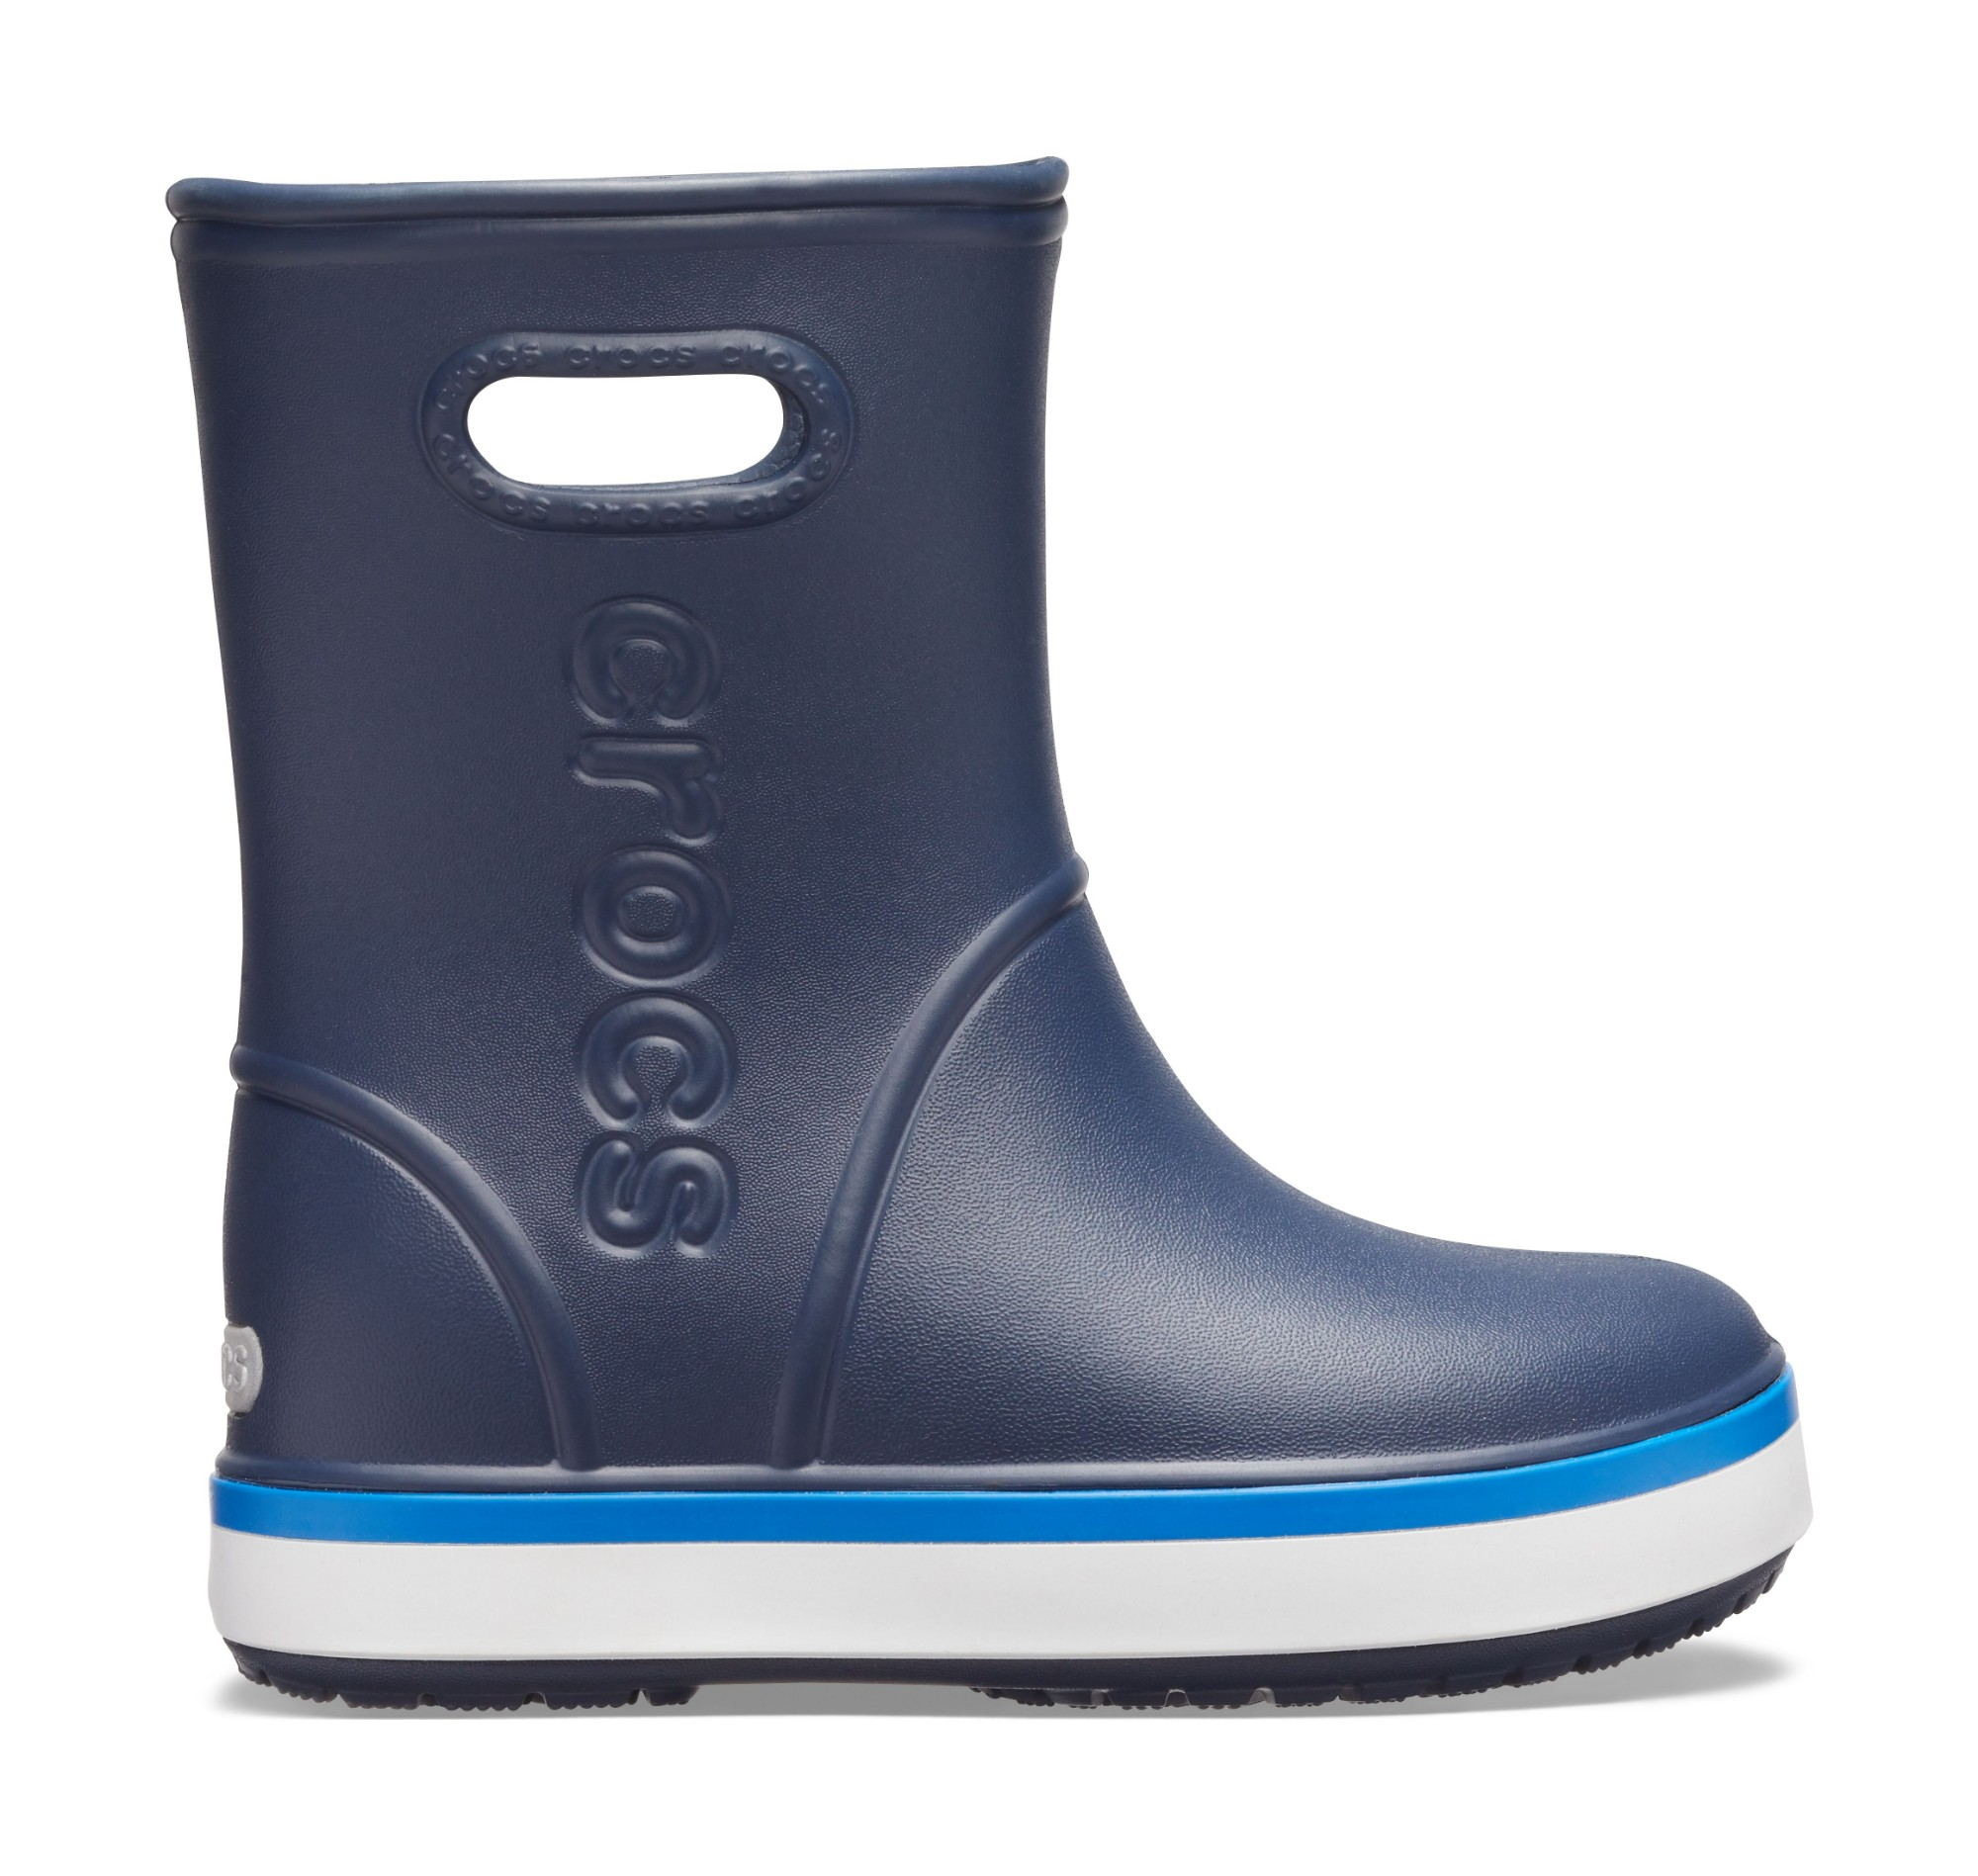 Crocs™ Crocband Rain Boot Kid's Navy/Bright Cobalt 23